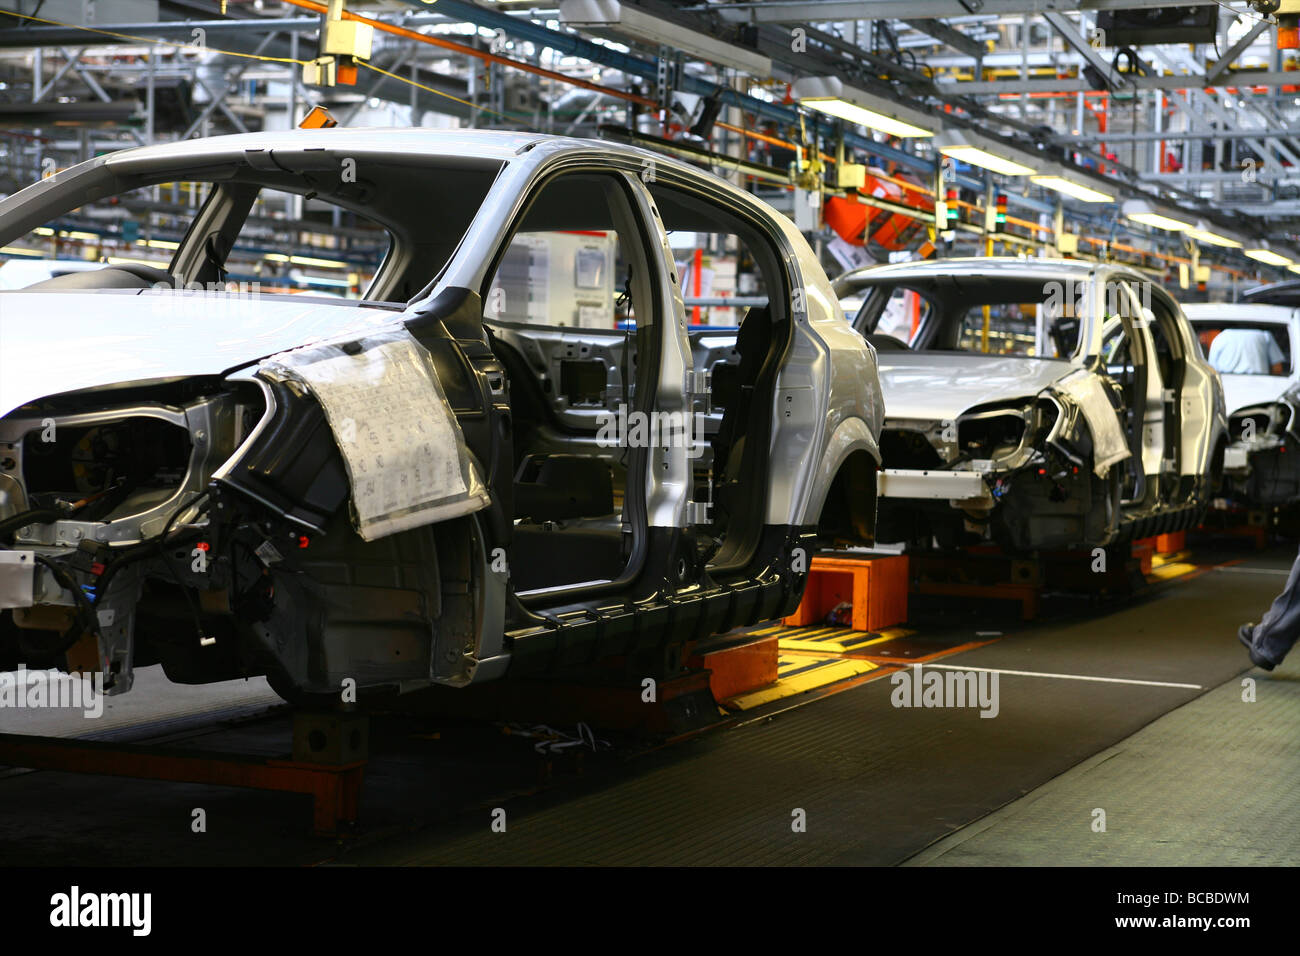 Vauxhall Car Factory production line Ellesmere Port showing Vauxhall Astras in production - Stock Image